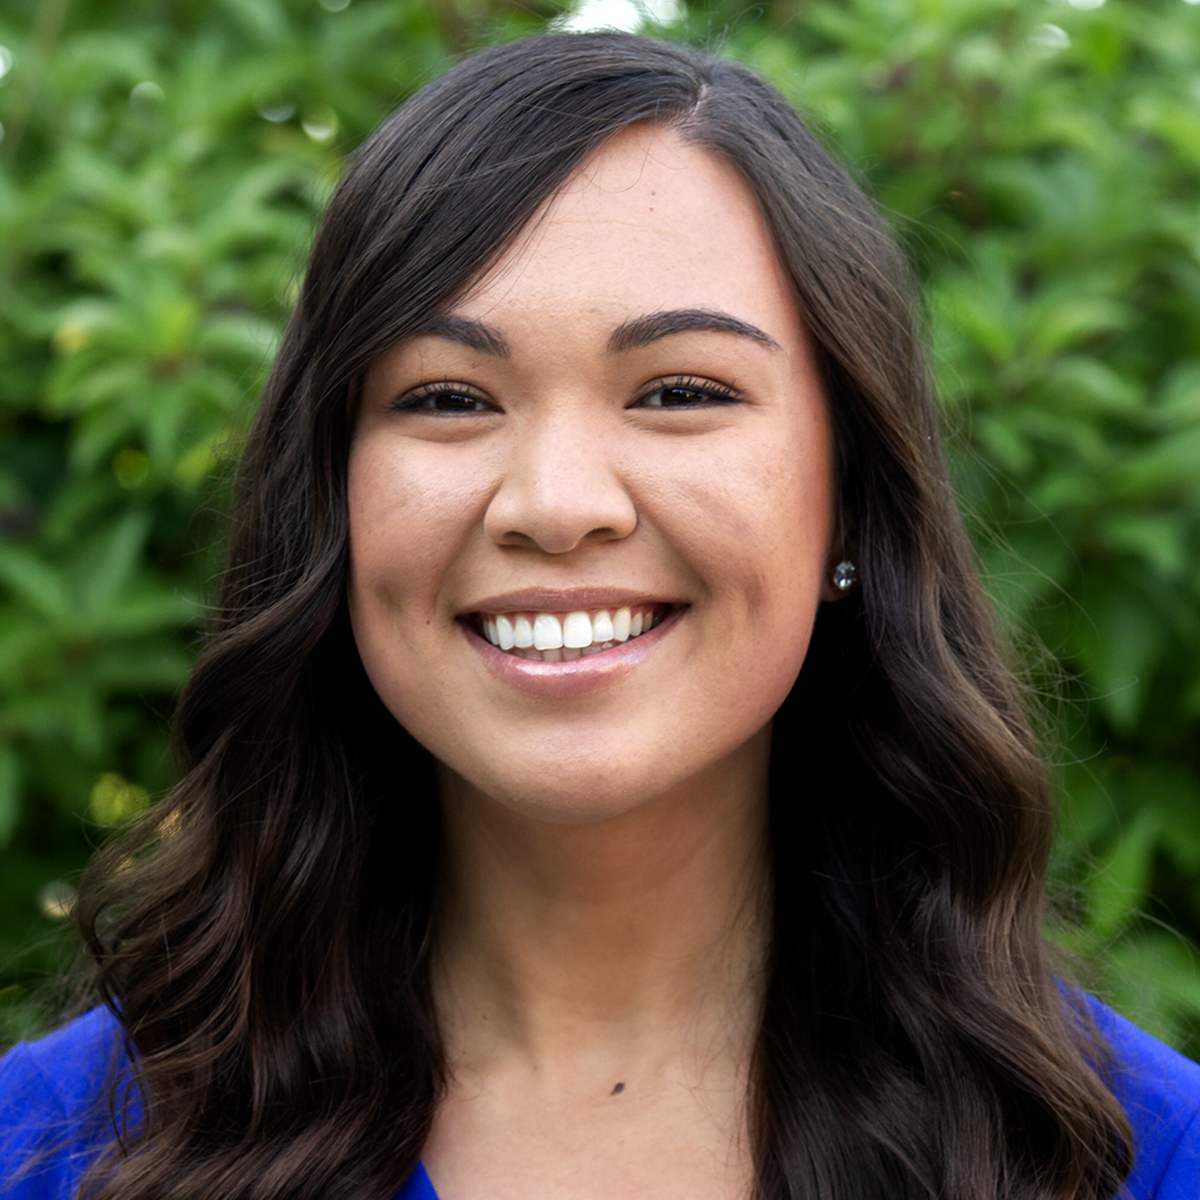 Kat Everard, Boise State Admissions Counselor